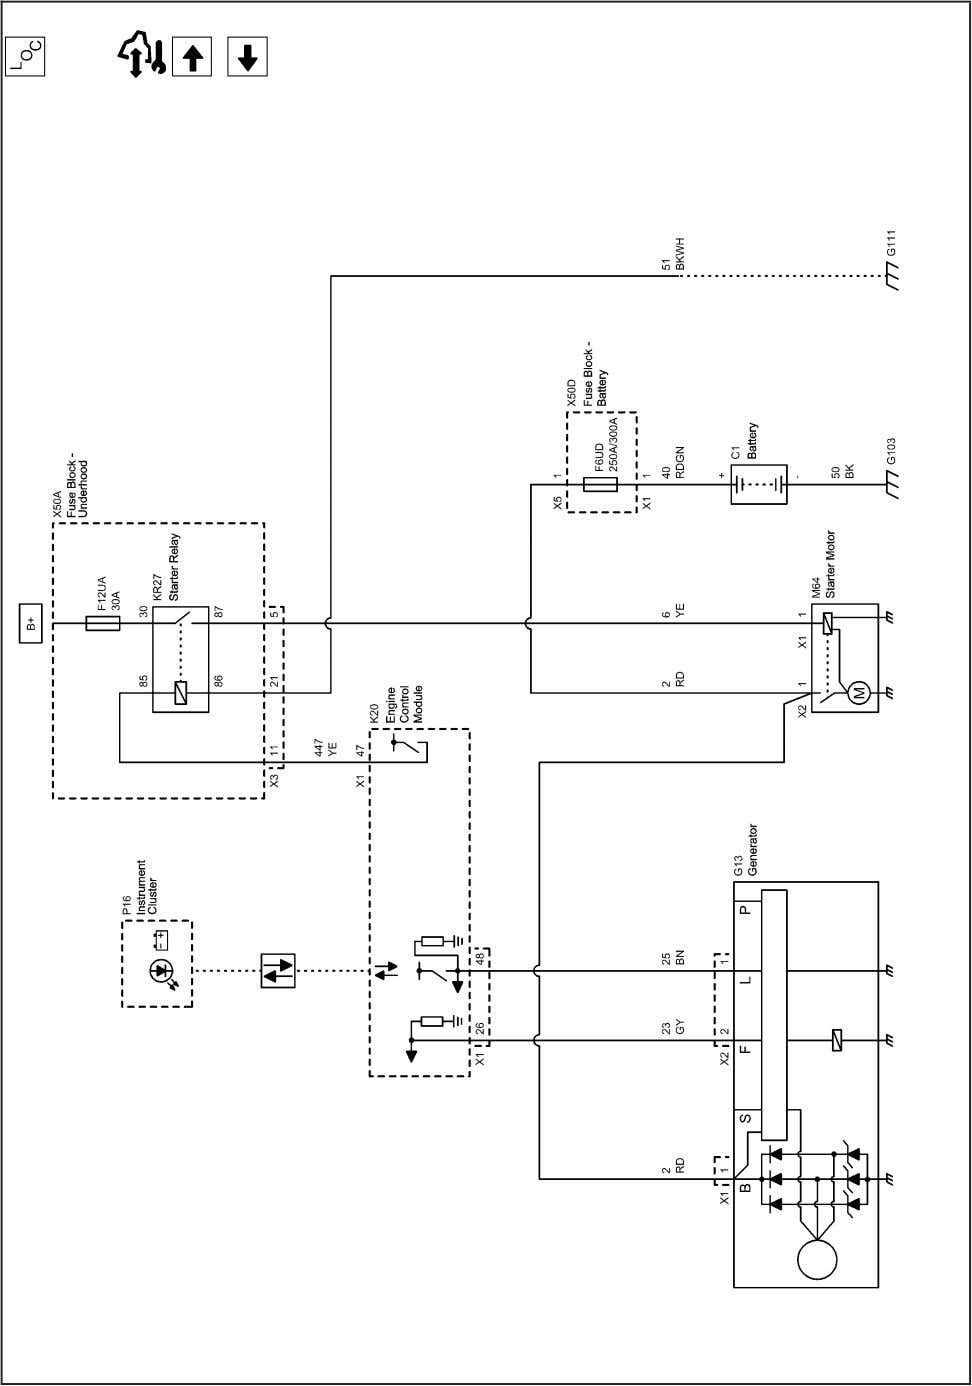 9-44 Engine Electrical 2203001 Starting and Charging Schematics (Start and Charge (LXV or 2H0)) 2010 -